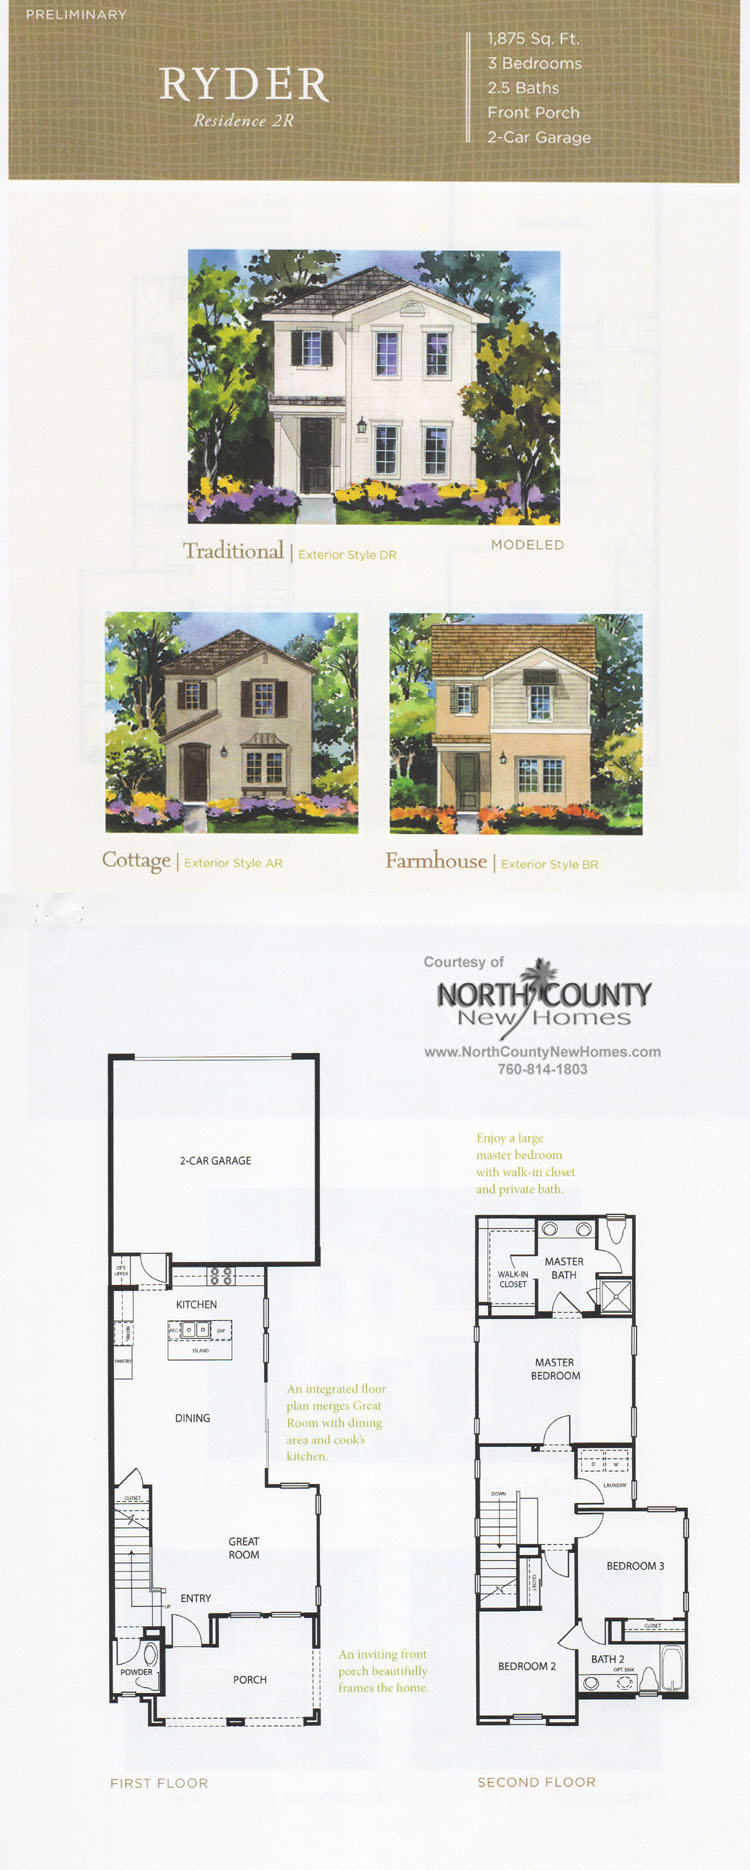 New homes in North County San Diego at Harmony Grove Village, Lustinao. San Diego, Escondido and San Marcos real estate. Ryder Floor Plan 2.